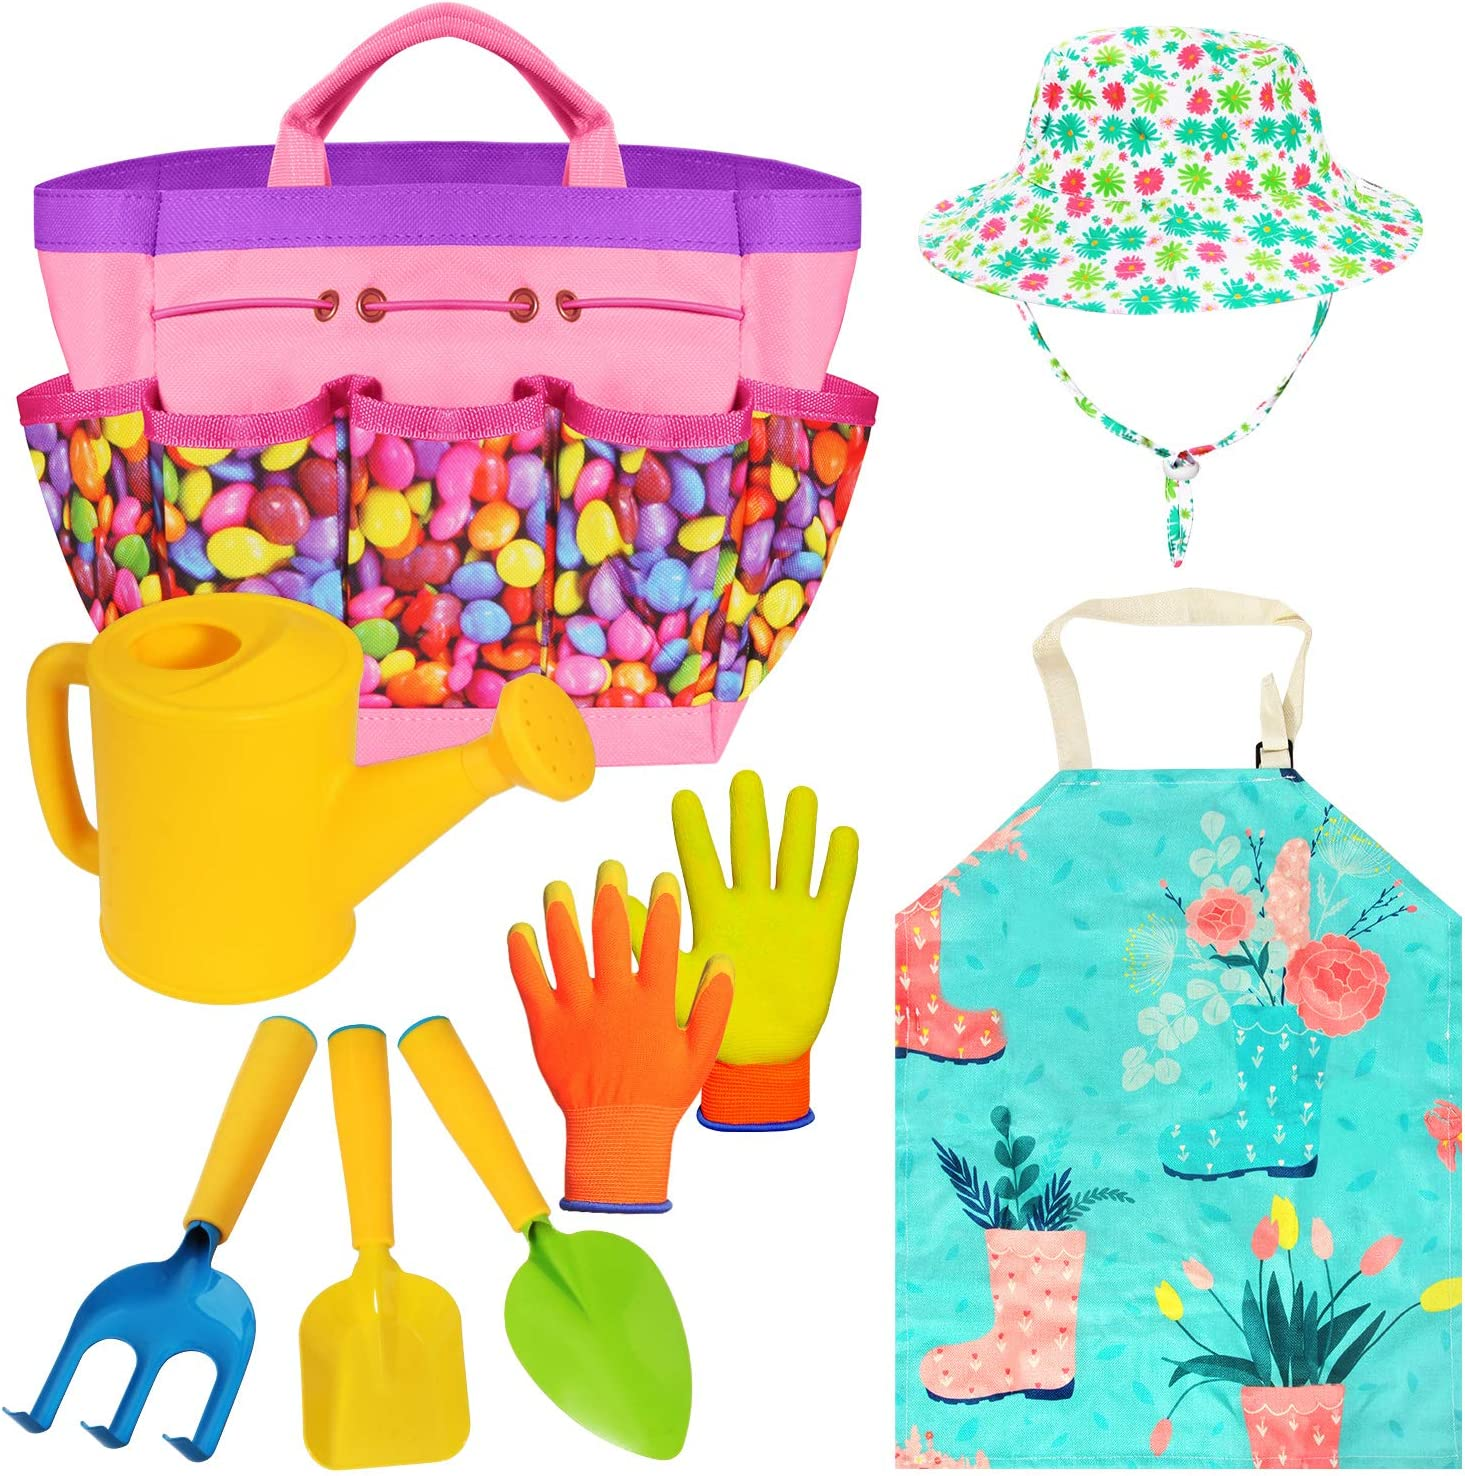 Gardening Tools Toy Set for Girls with Beatiful Storage Bag, Watering Can, Gardening Gloves, Shovels, rake, Apron, Sun Hat kit for Children Kids Outdoor Play and Dress up Clothes Role Play